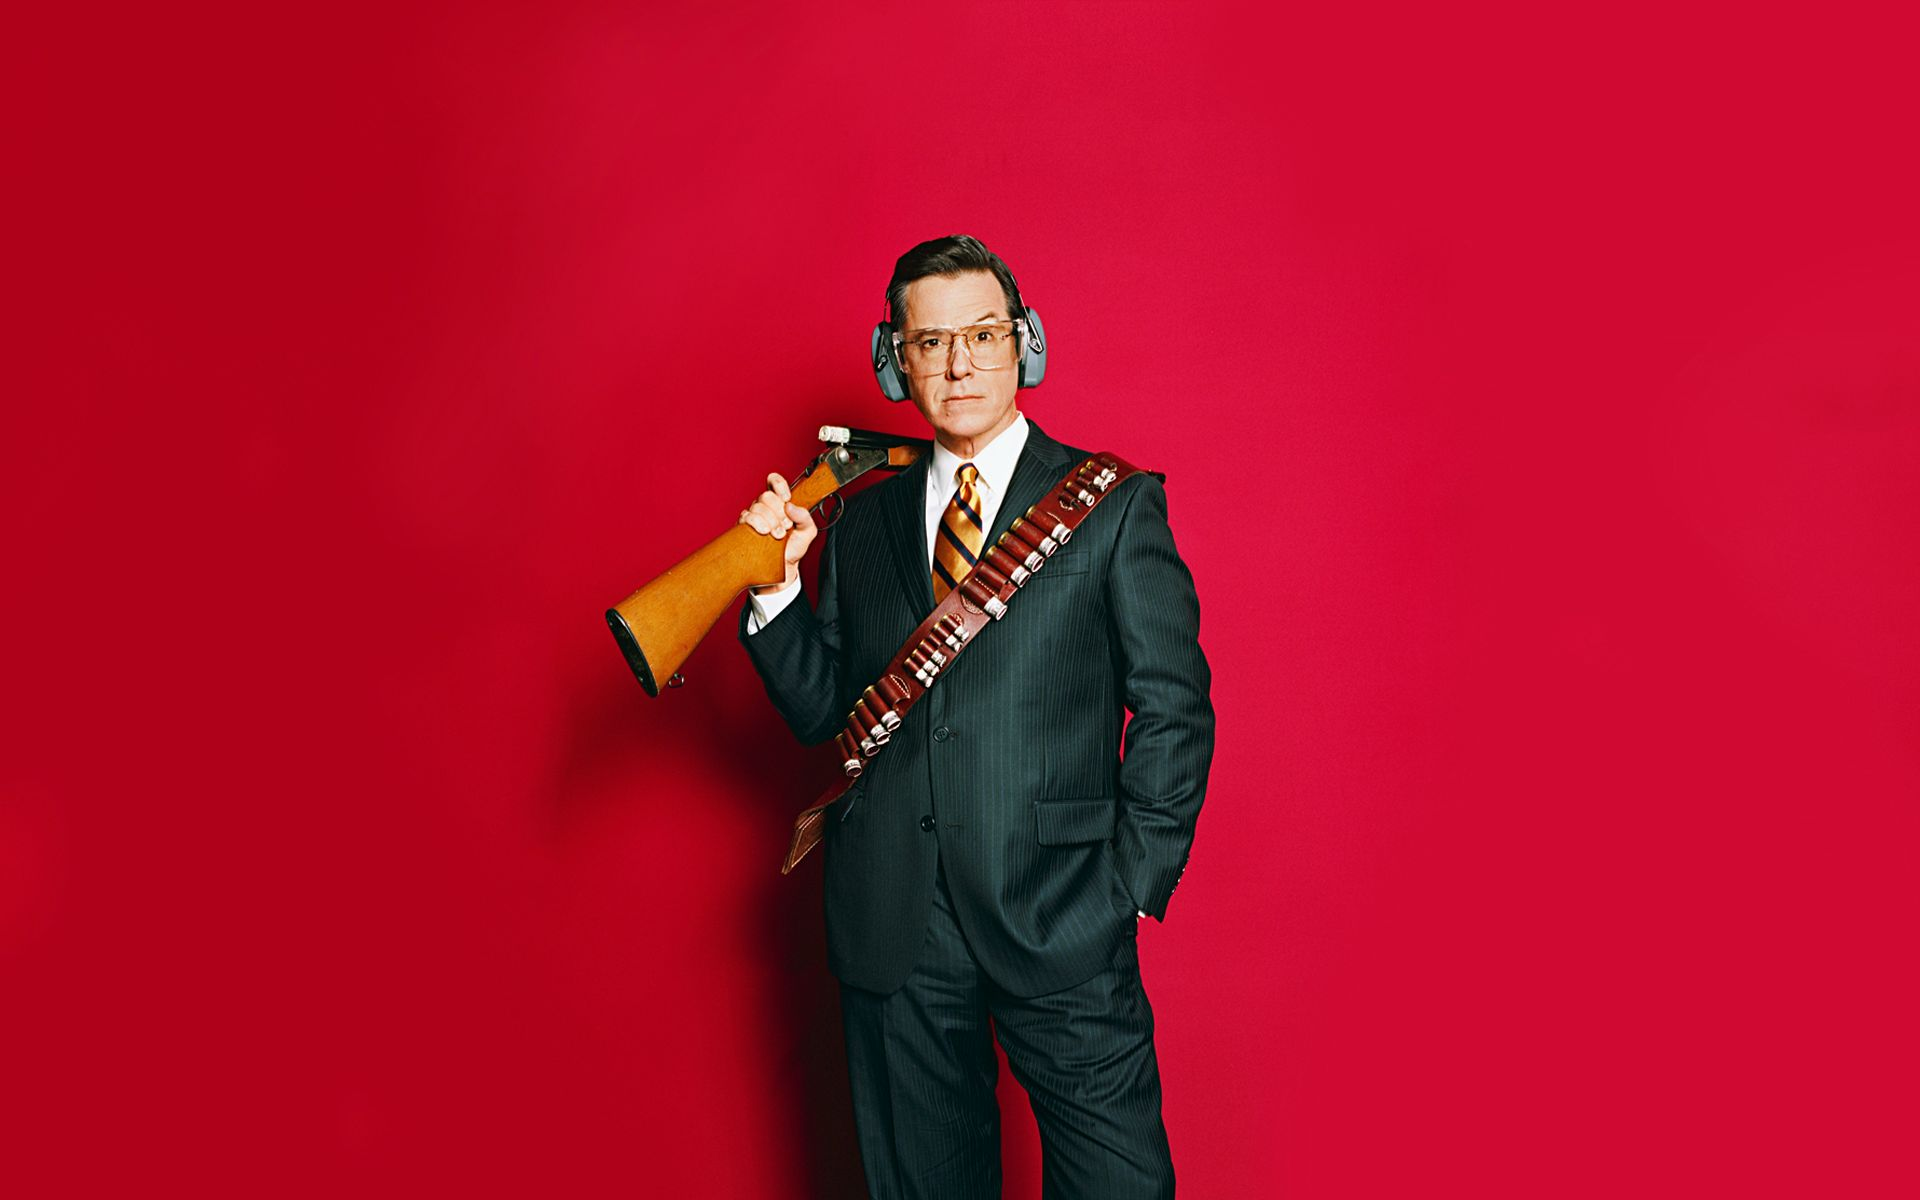 Stephen Colbert Wallpaper 9   1920 X 1200 stmednet 1920x1200